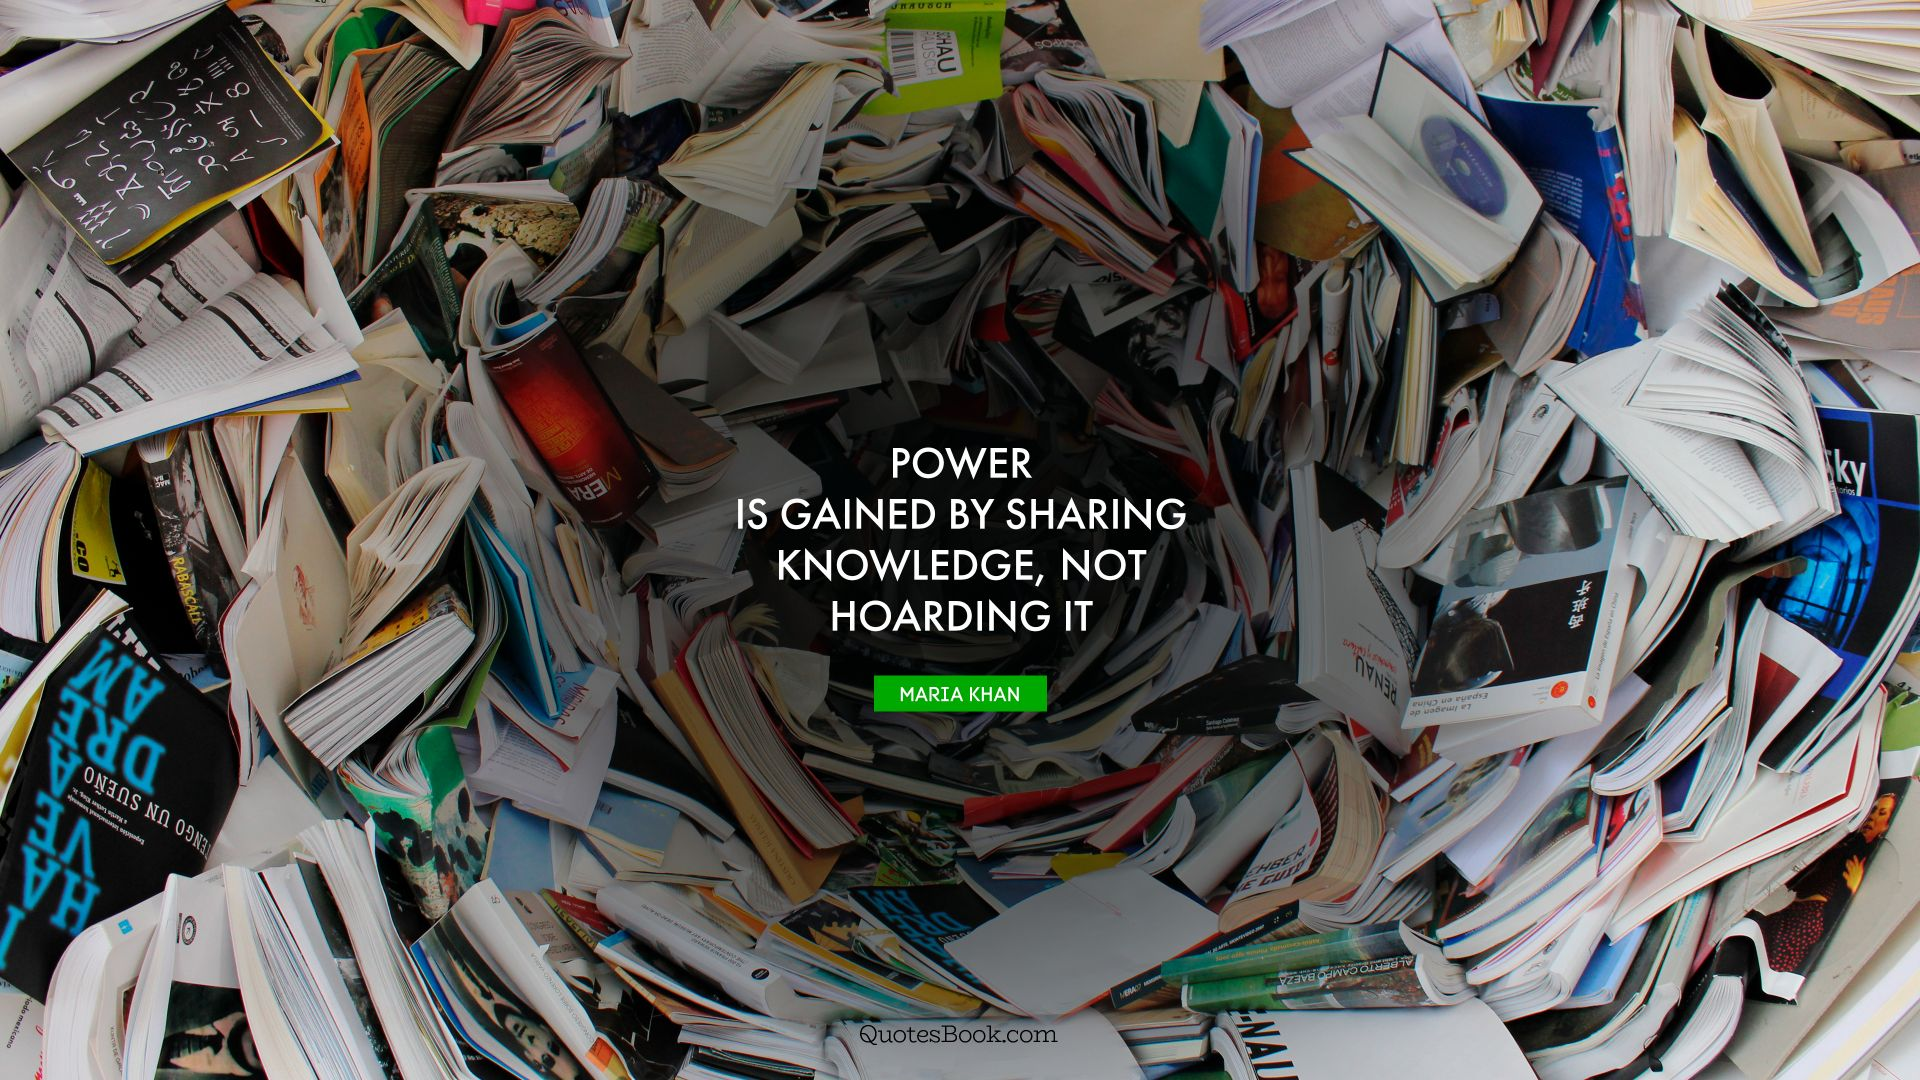 Power is gained by sharing knowledge, not hoarding it. - Quote by Maria Khan